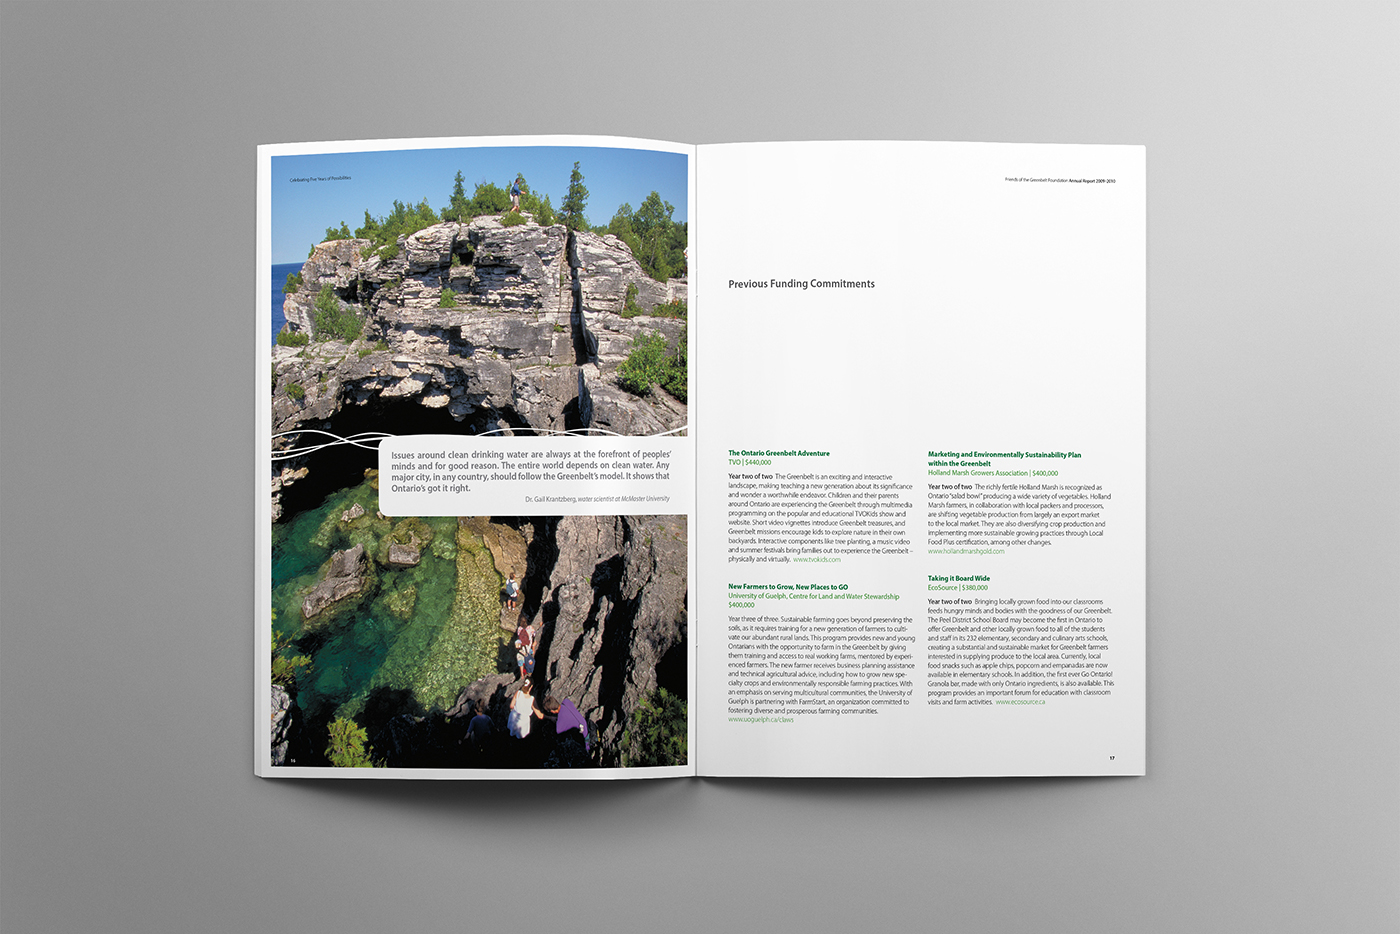 Annual report 2009-2010 covers Ontario's Greenbelt and the grotto of Bruce Peninsula. People adventuring down to visit the caves.